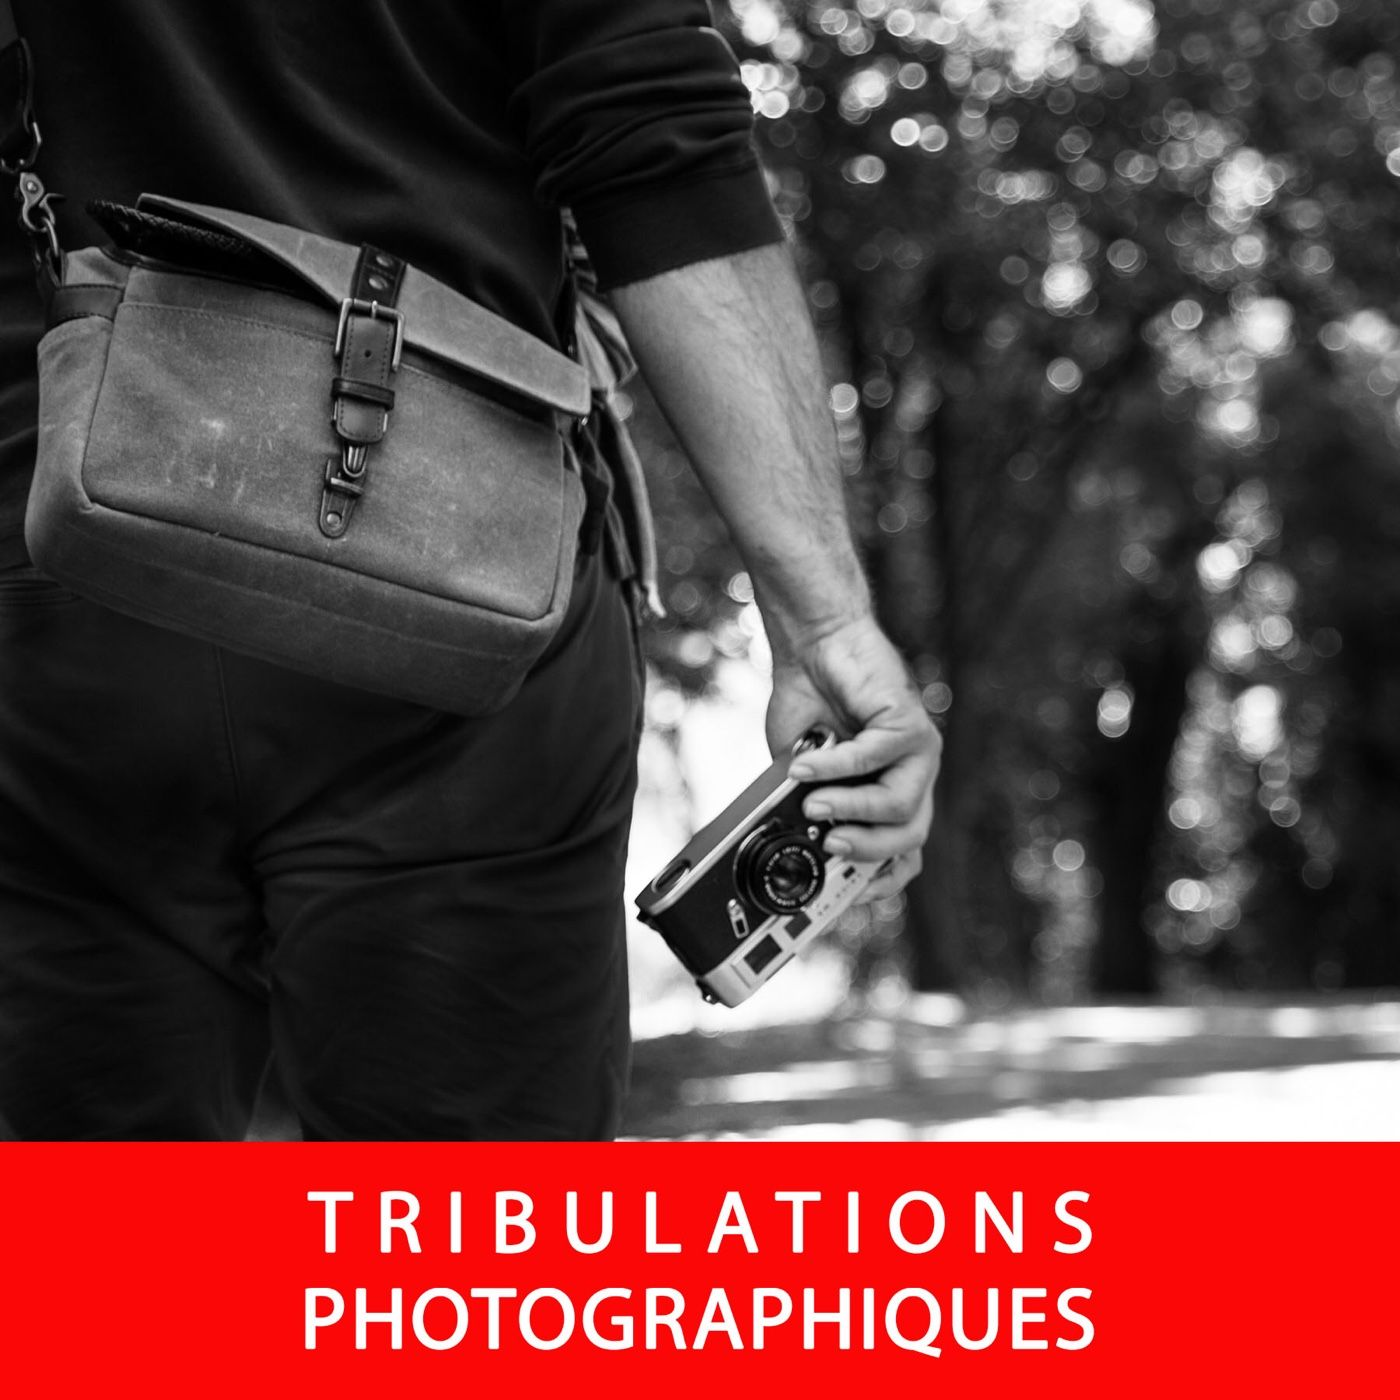 Tribulations Photographiques